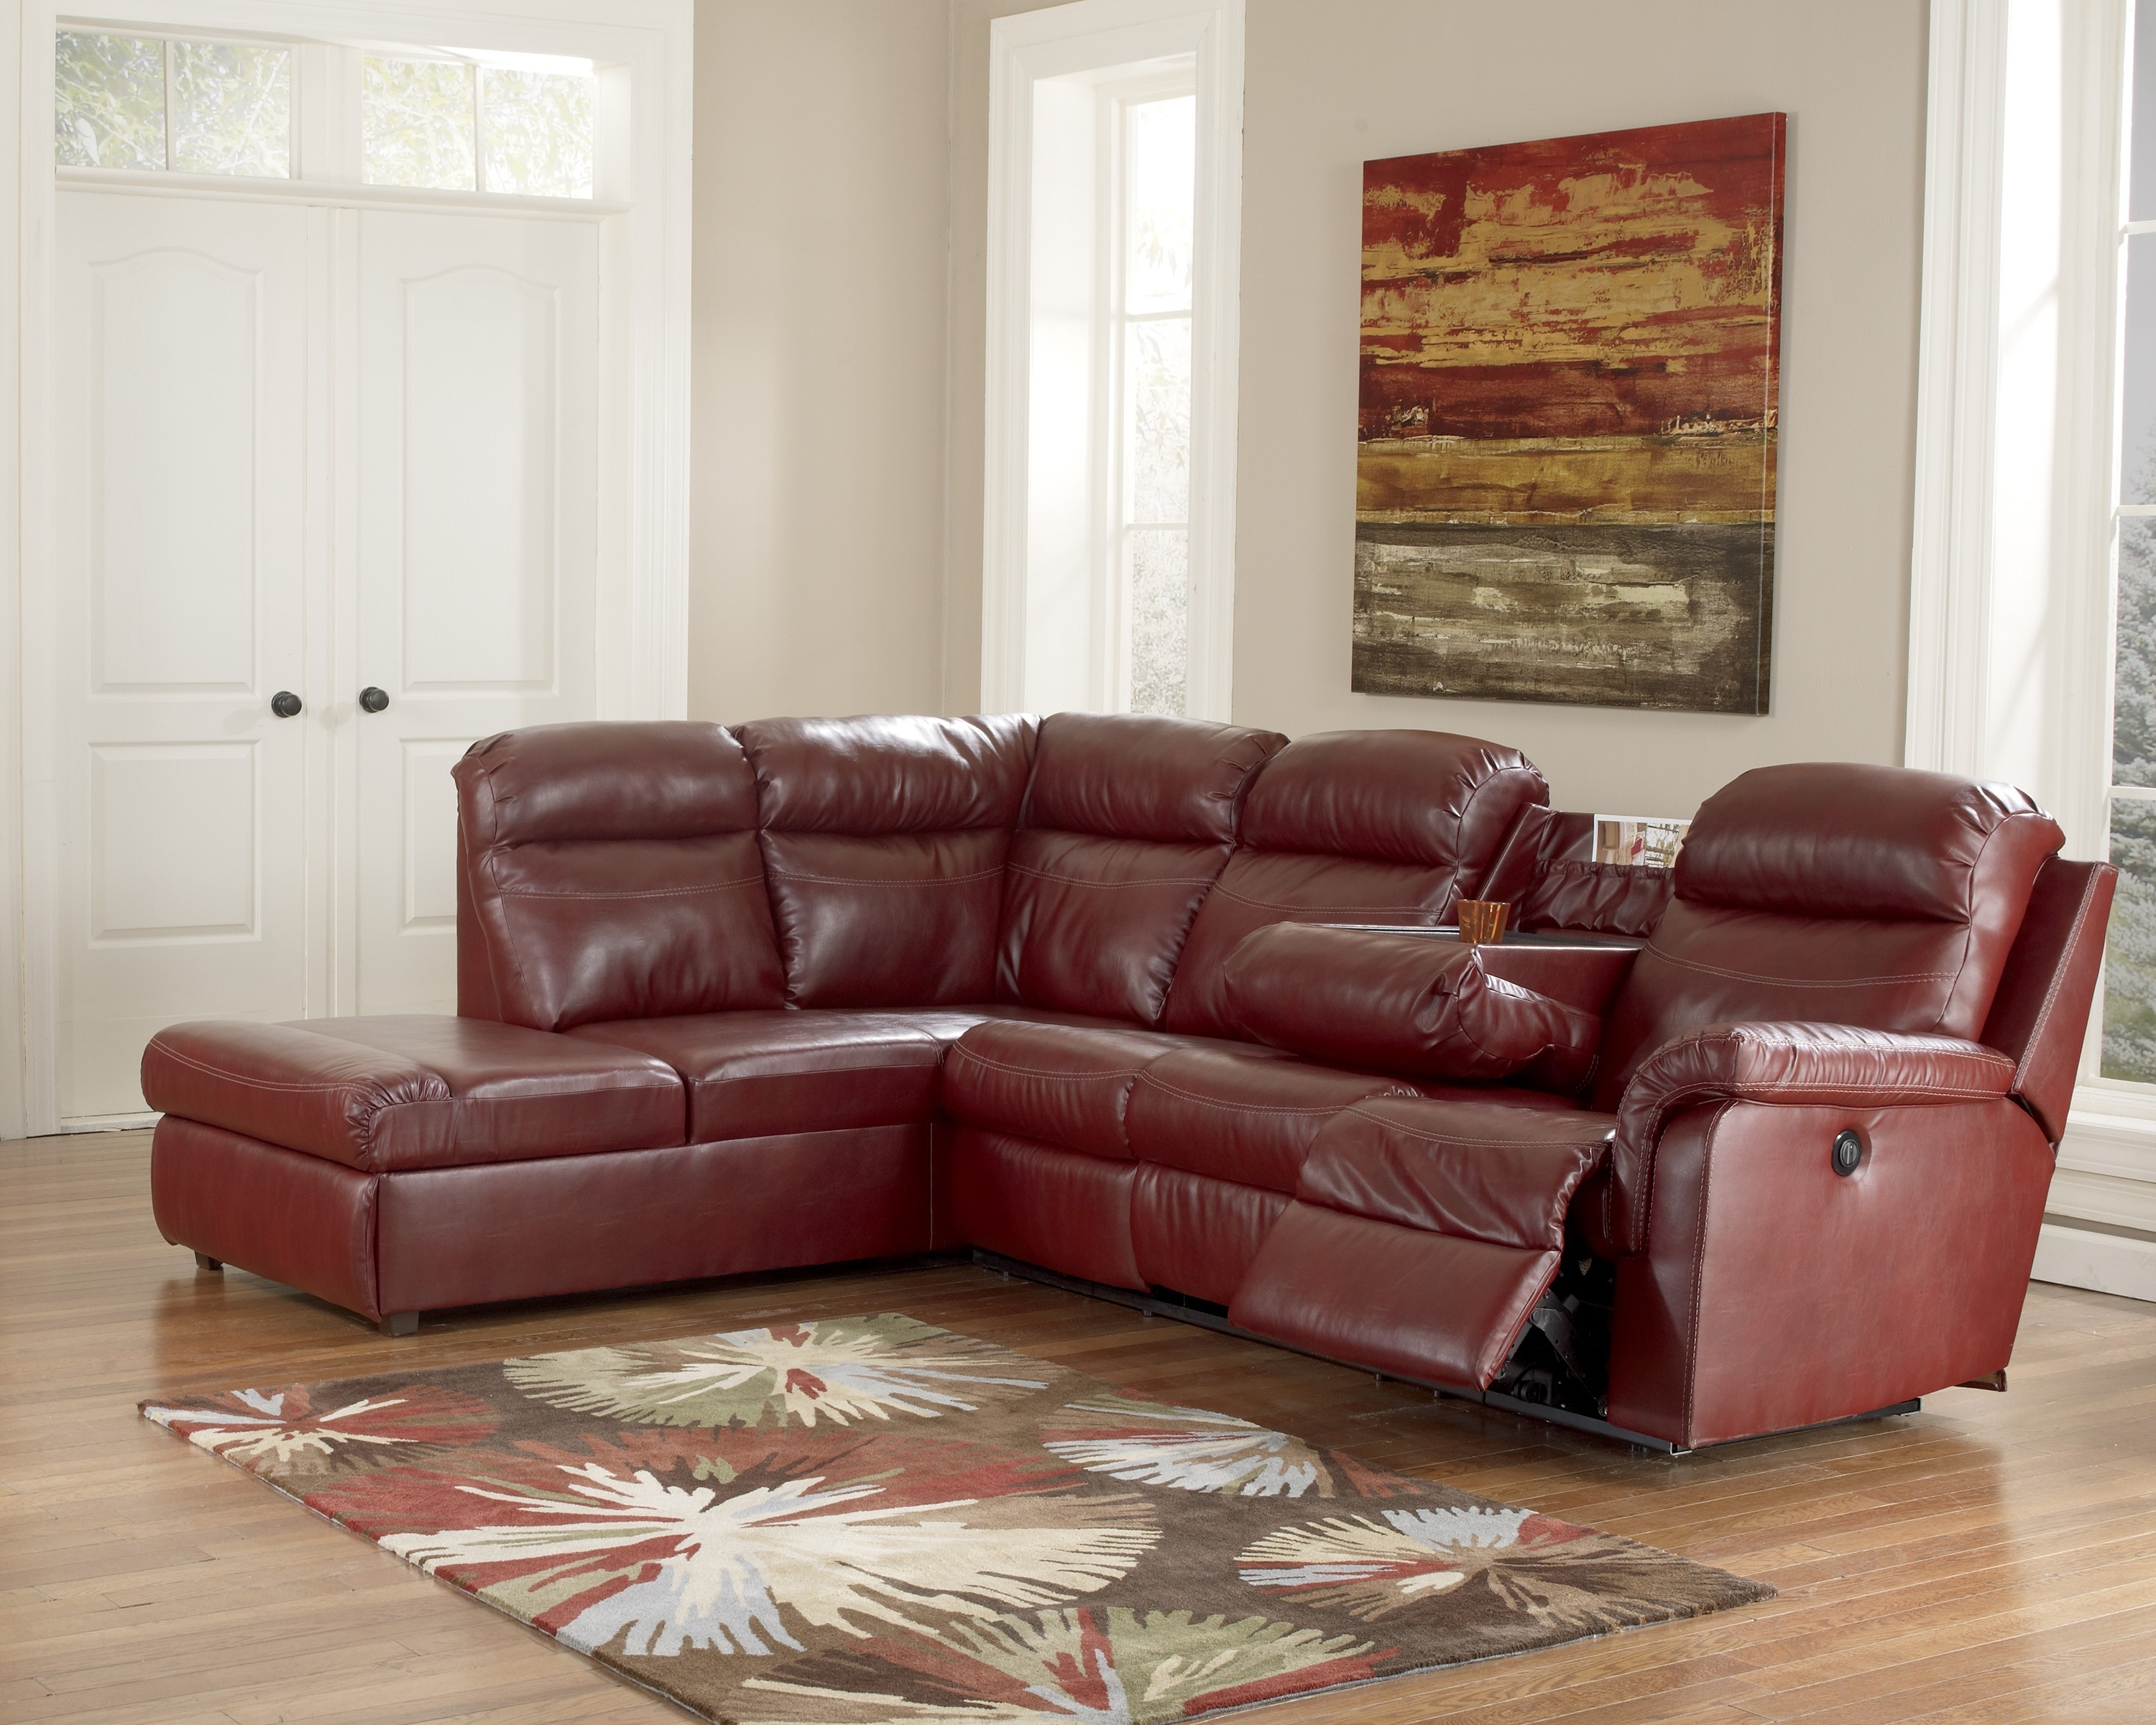 Beautiful Leather Sectional With Chaise And Recliner Gallery Inside Well Liked Leather Sectionals With Chaise And Recliner (View 3 of 15)